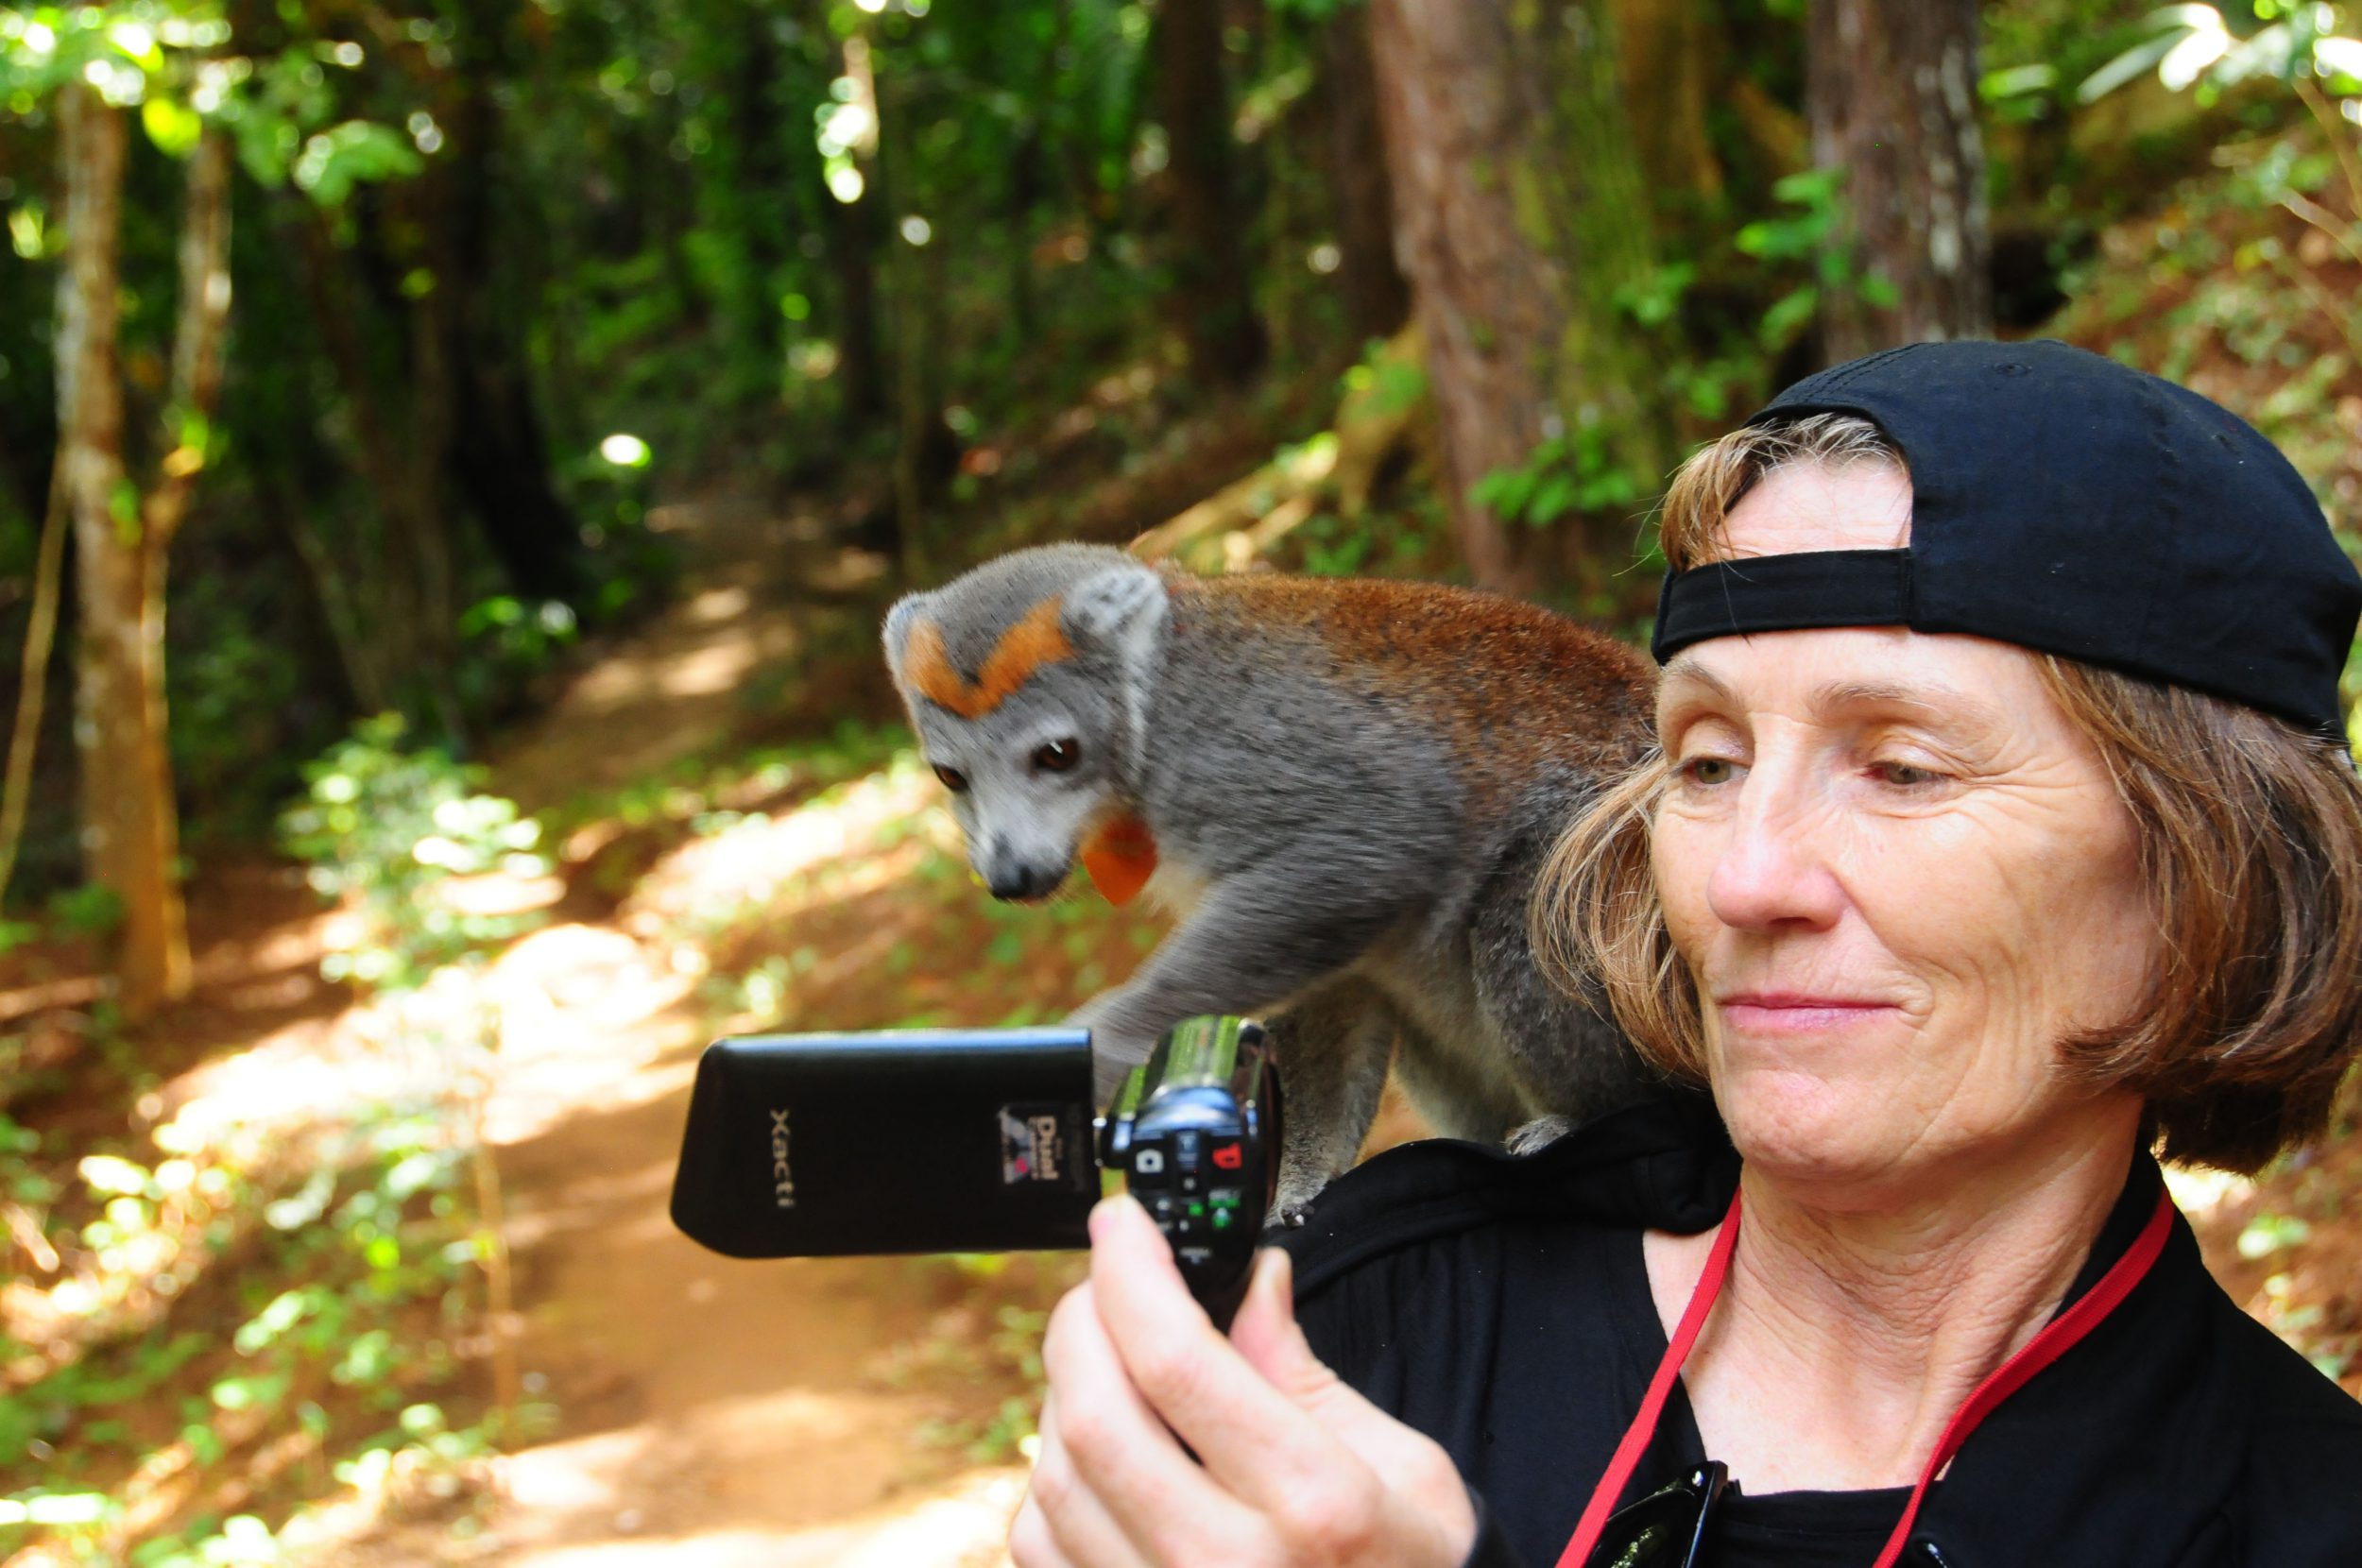 Jo Morgan and a crowned lemur engage in cellphone communications. Madagascar, Africa